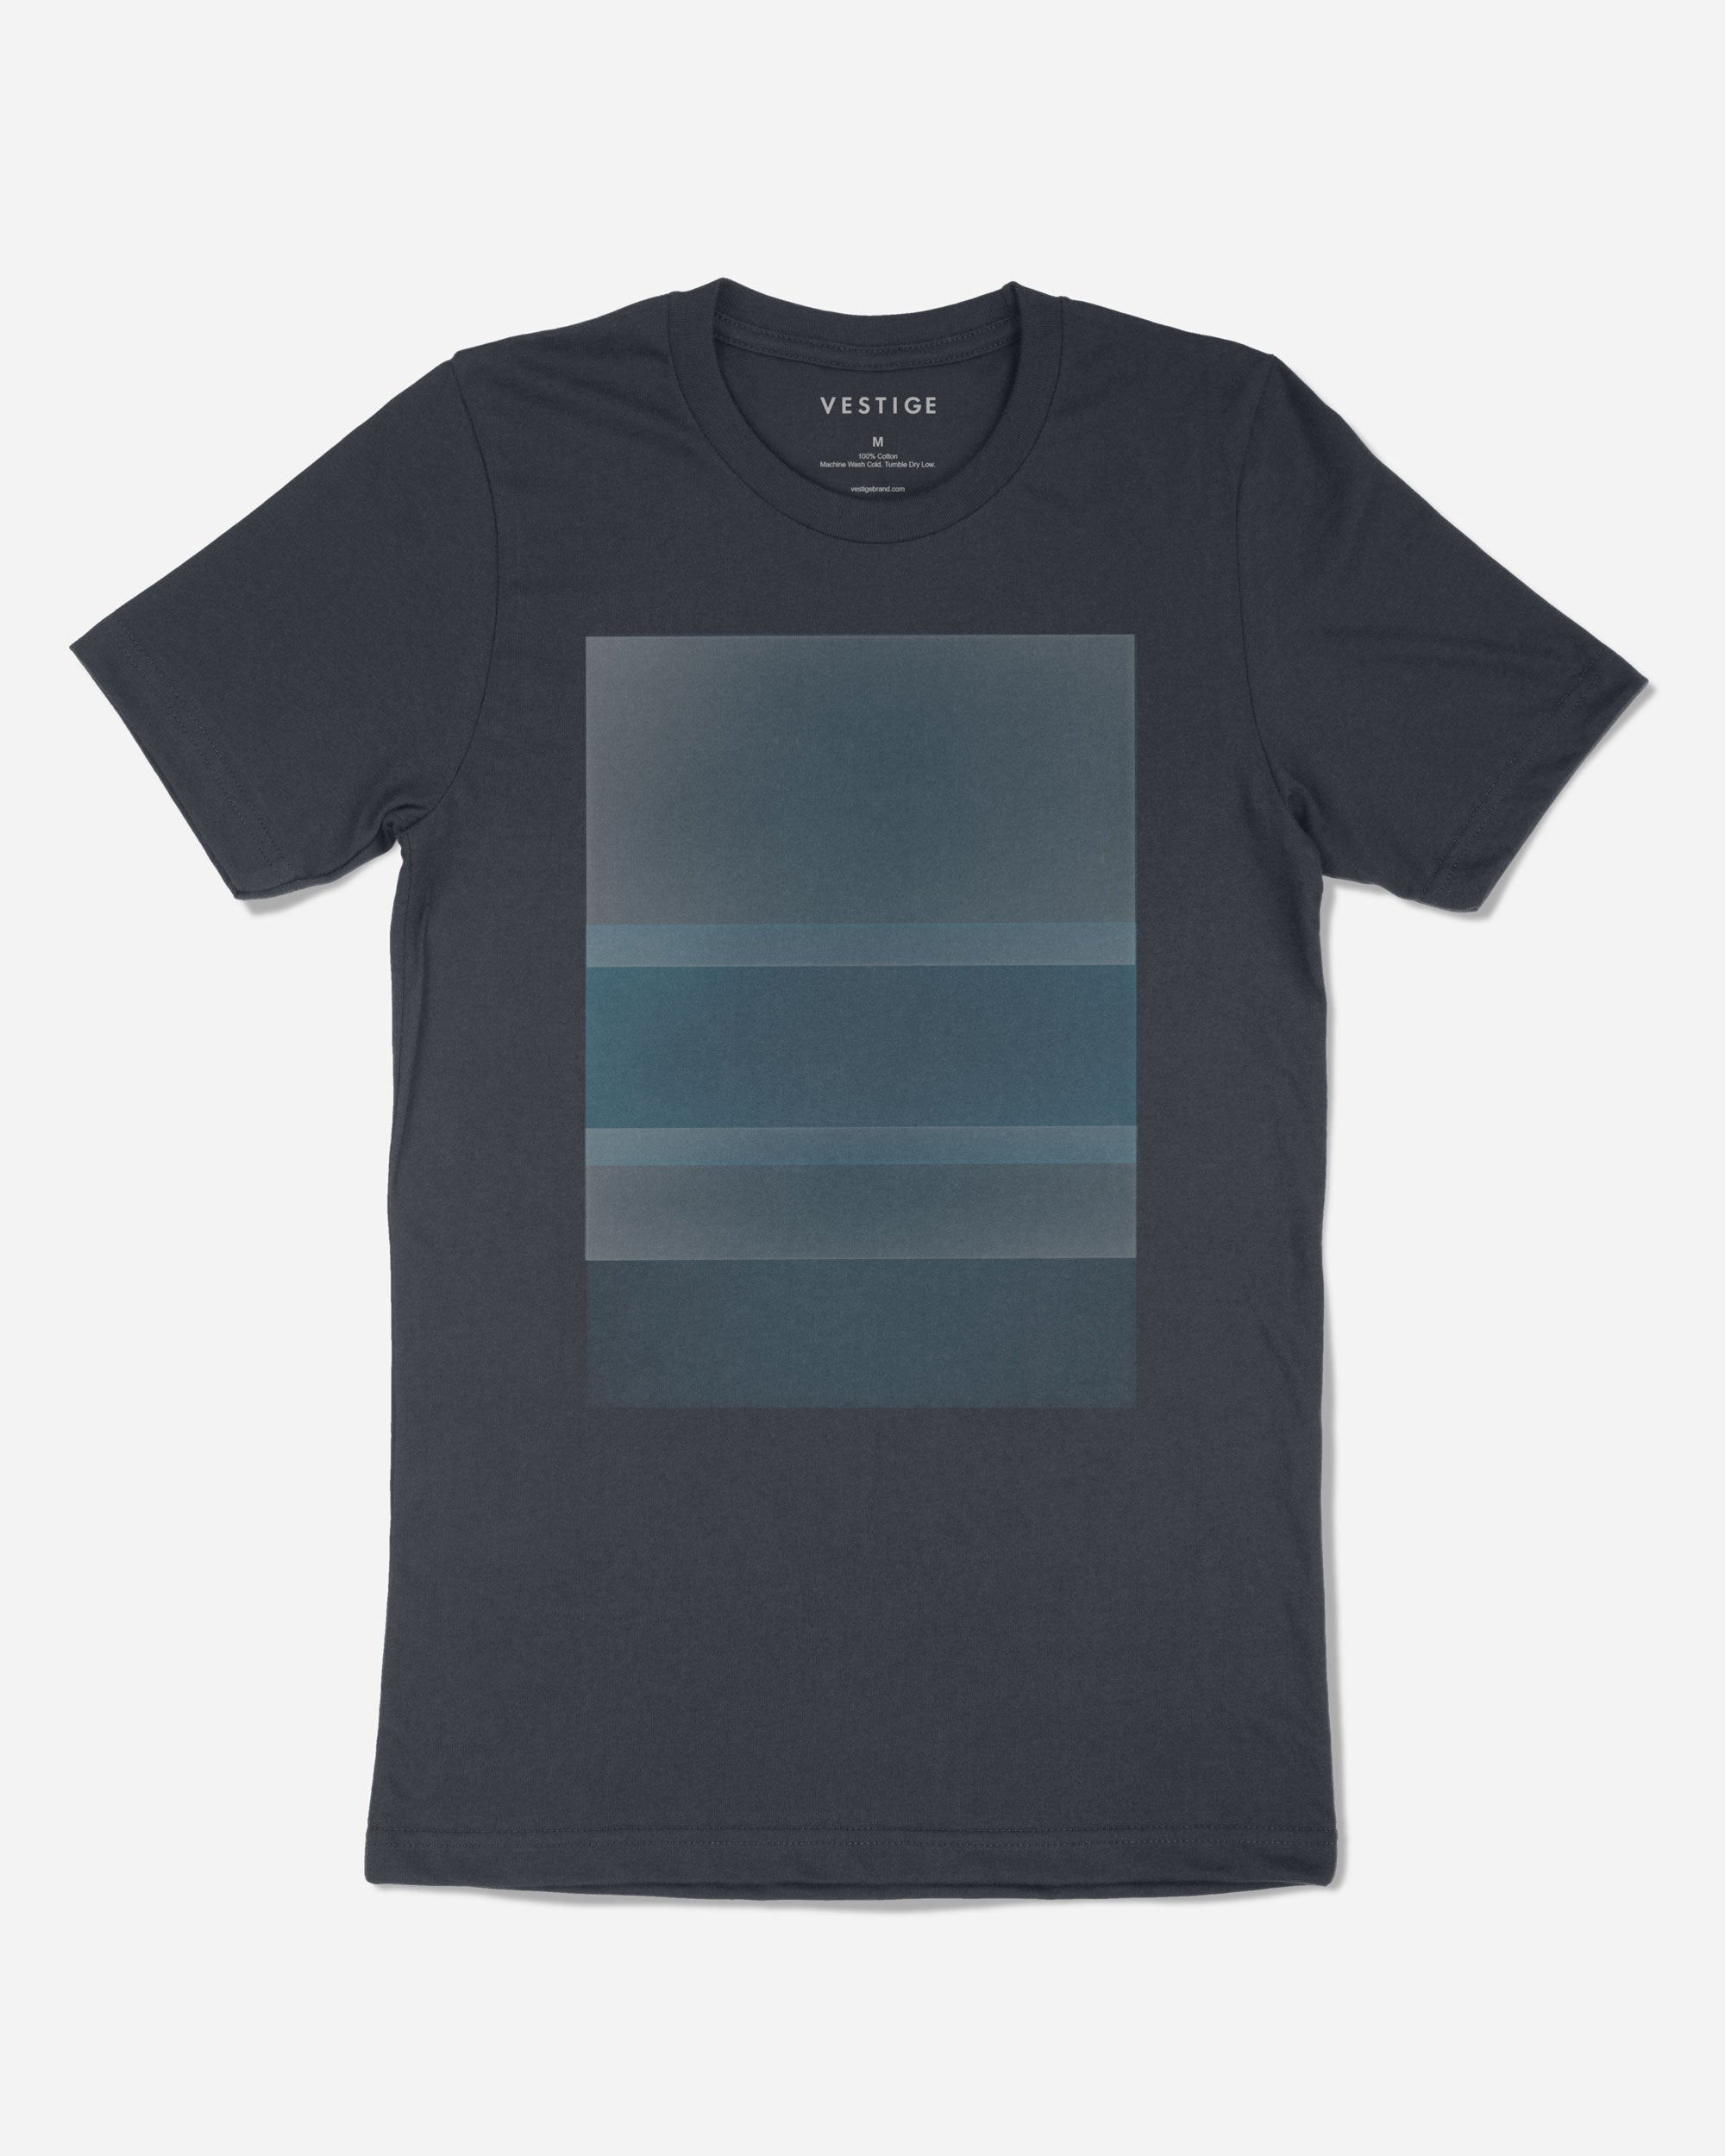 Graphic T-Shirt, Carbon